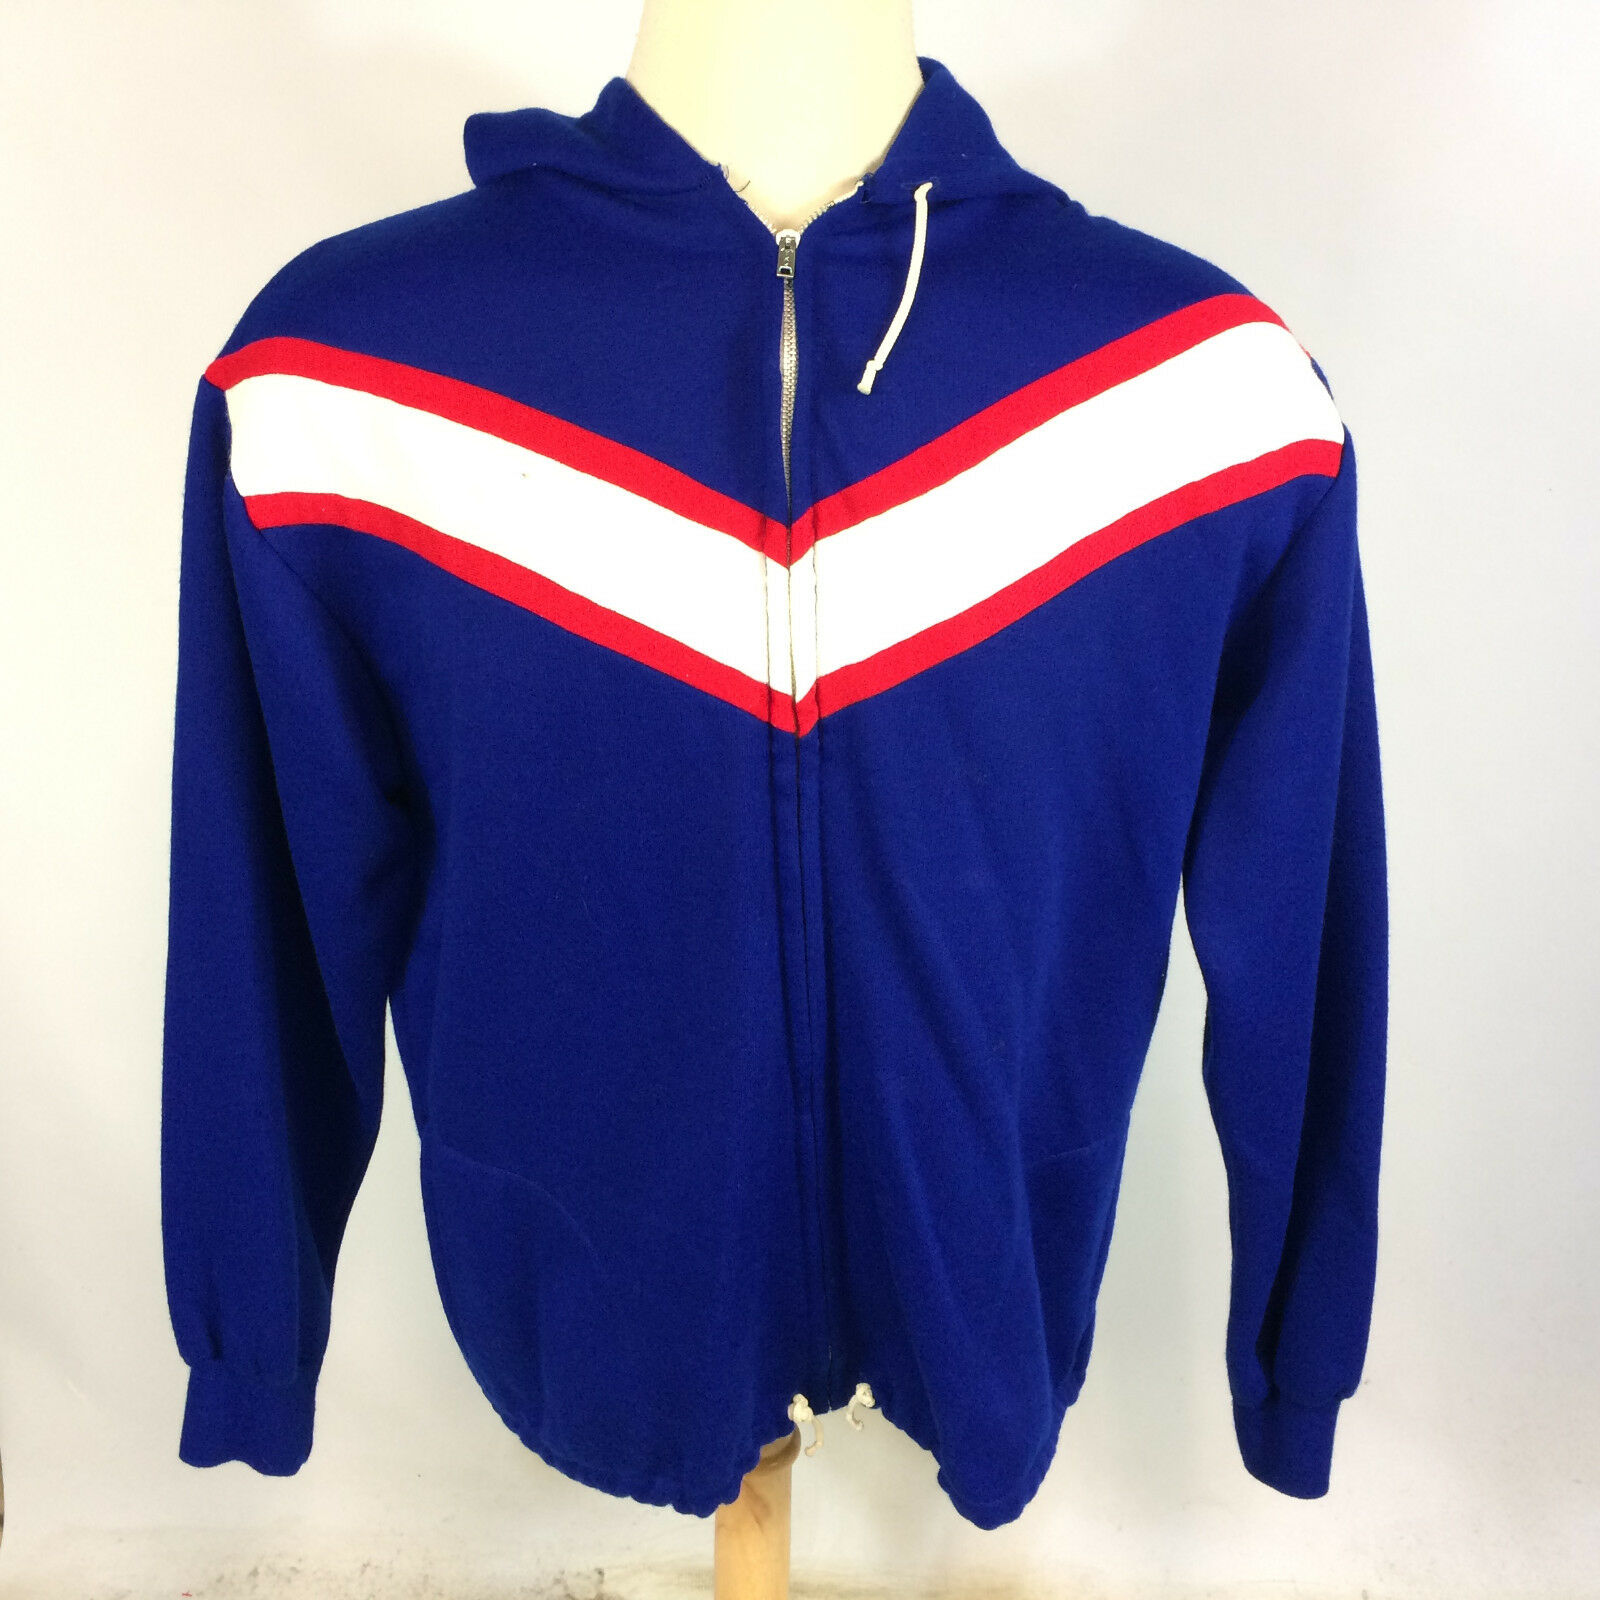 Vintage 70s 80s Poland Hoody Sweatshirt Coat Jacket XL L Blau Sports Acrylic